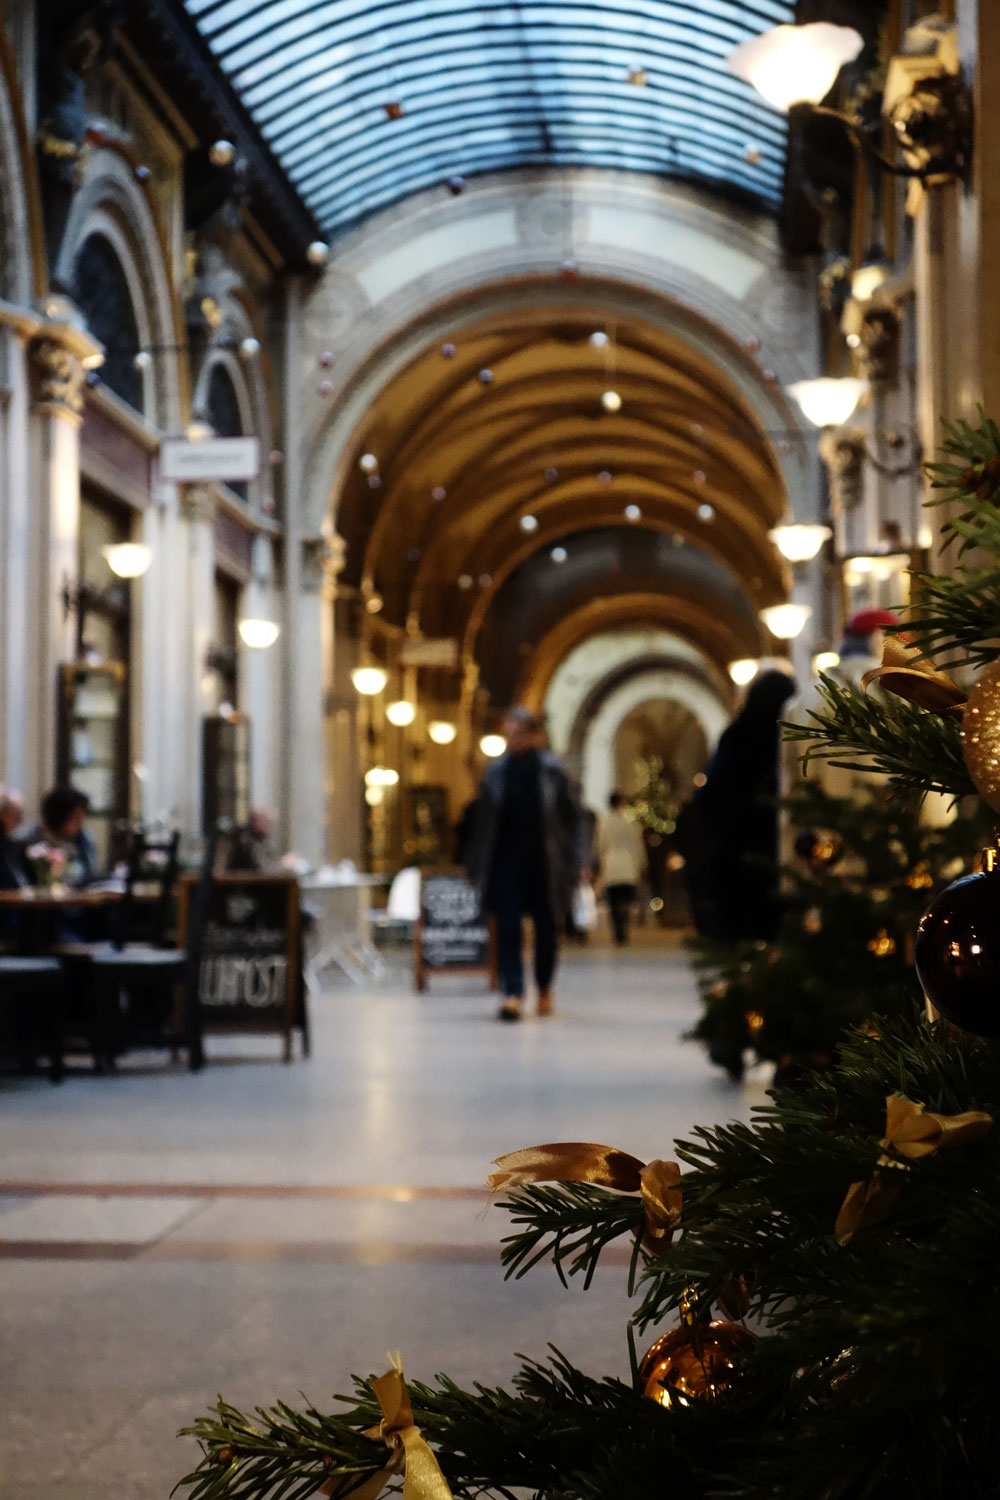 passage-cafe-viennois-marches-de-noel